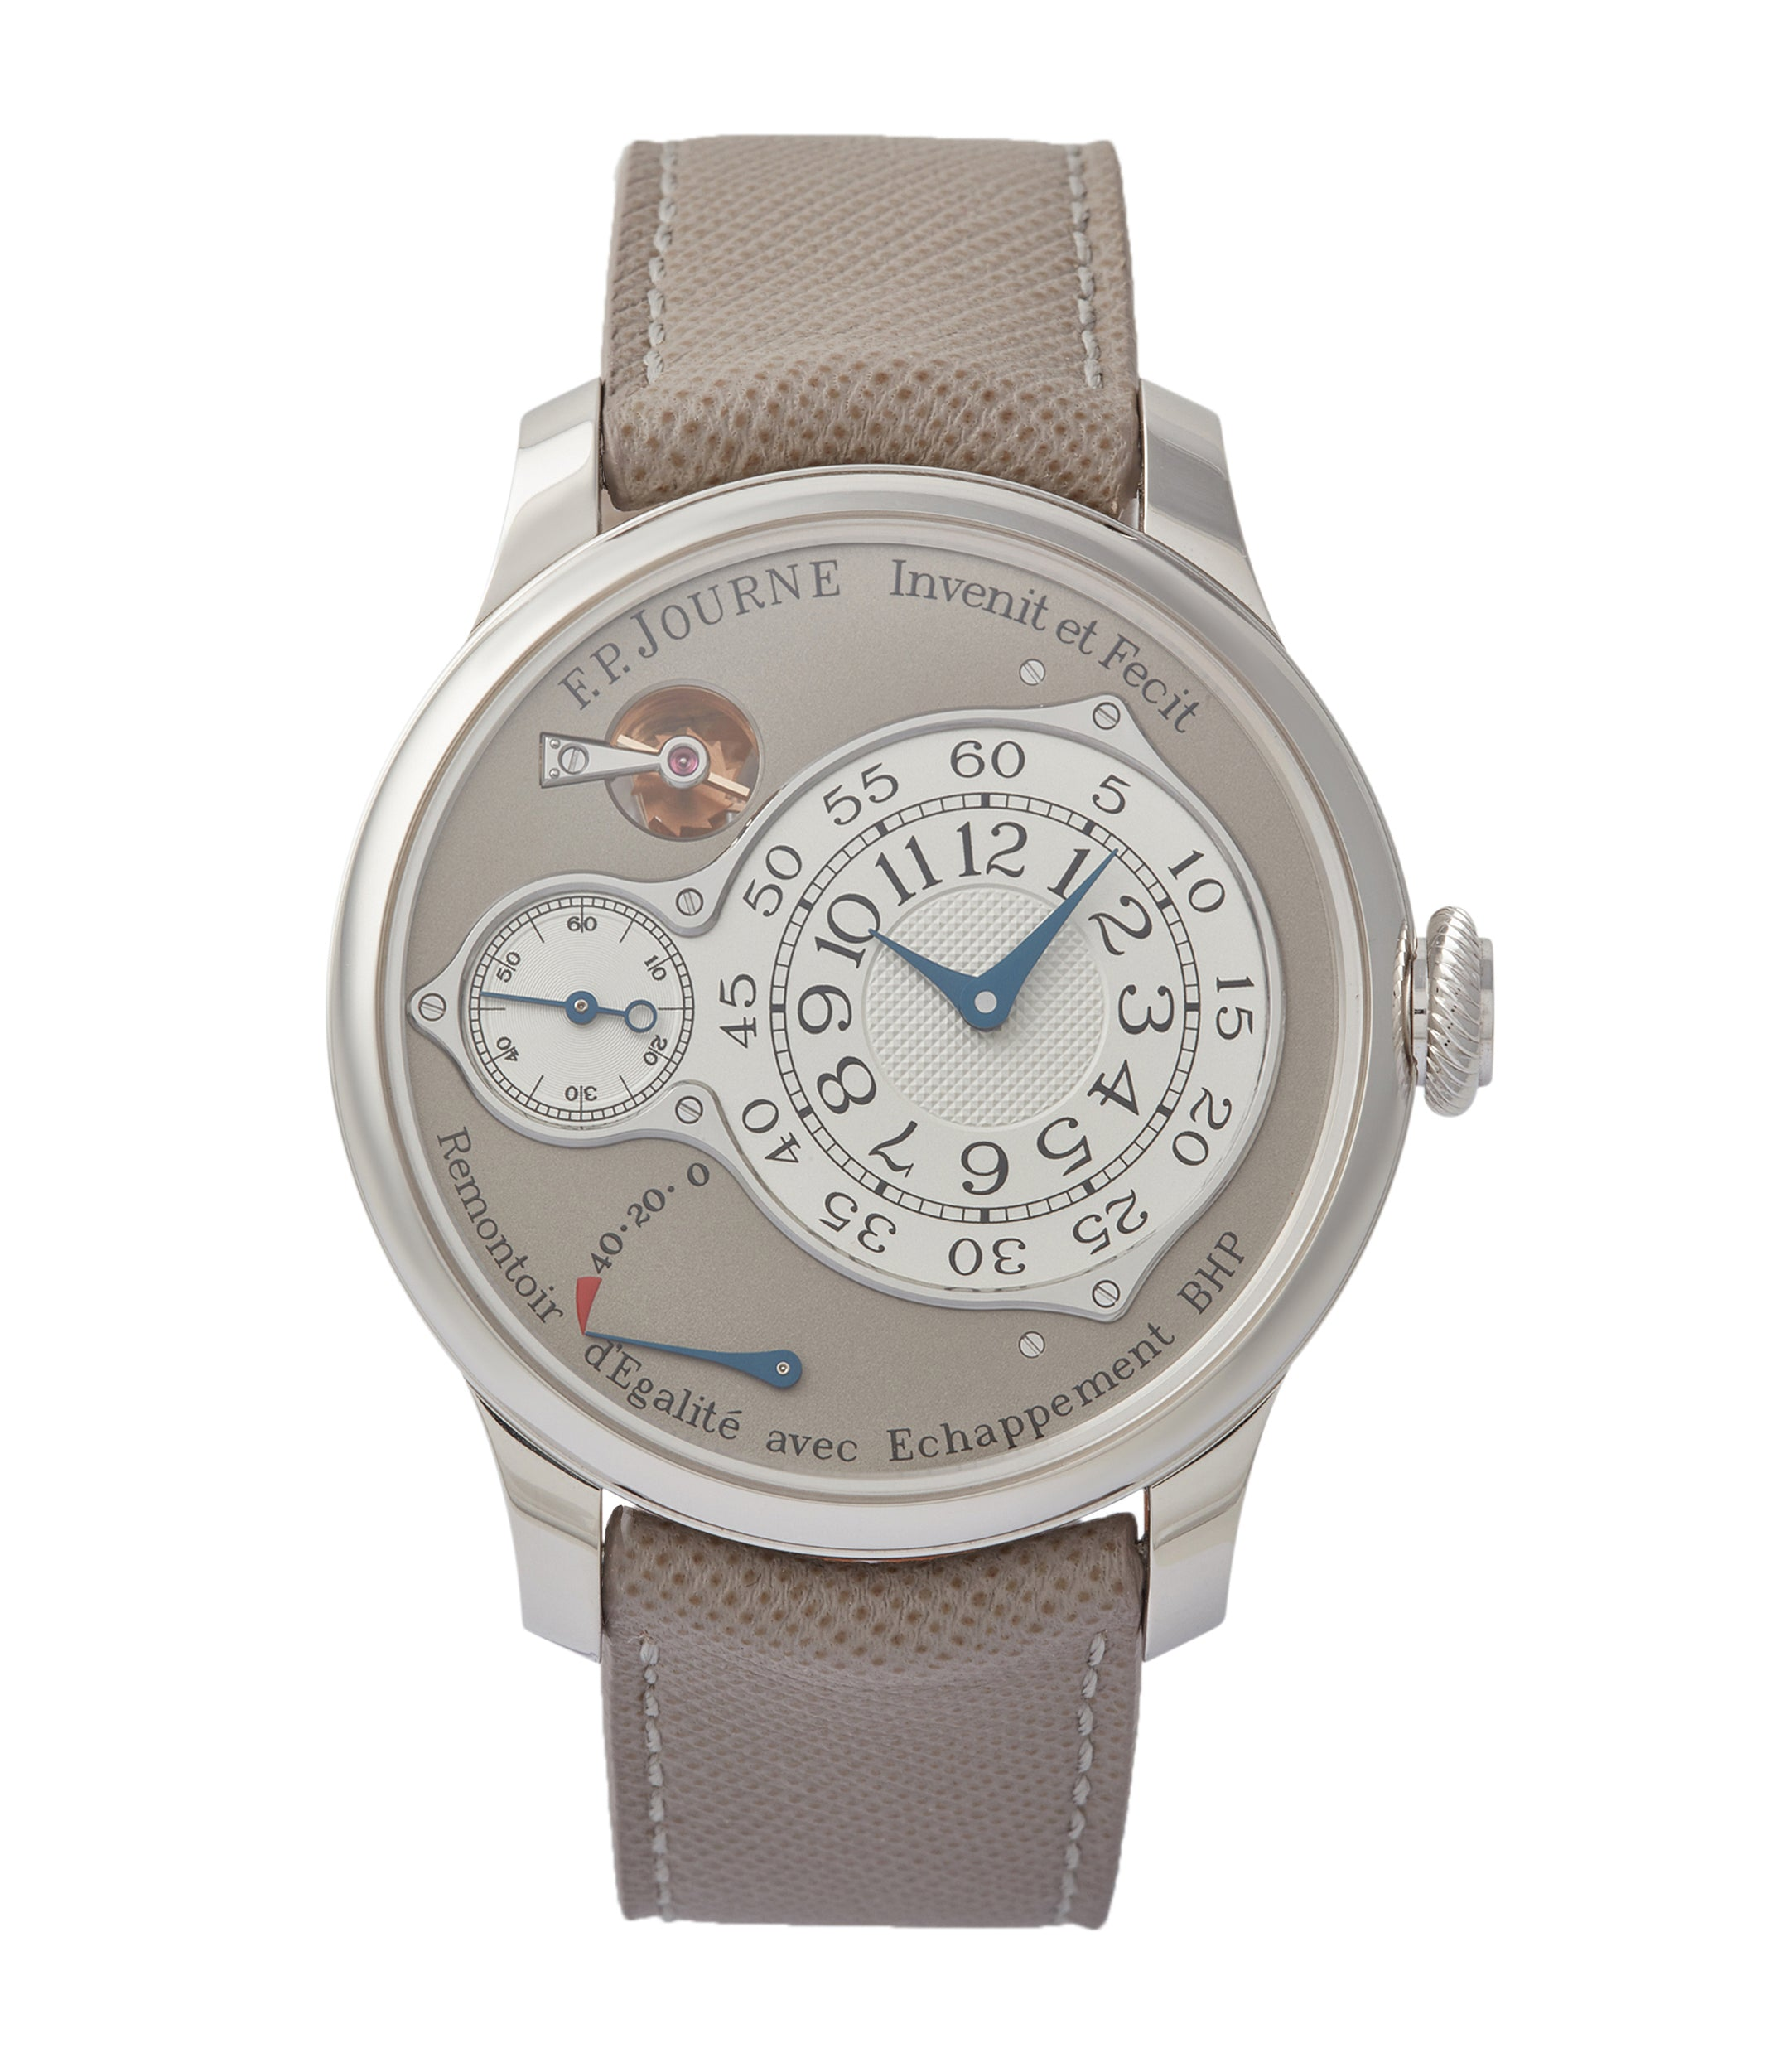 F. P. Journe Chronometre Optimum 40mm platinum pre-owned dress watch for sale at A Collected Man London